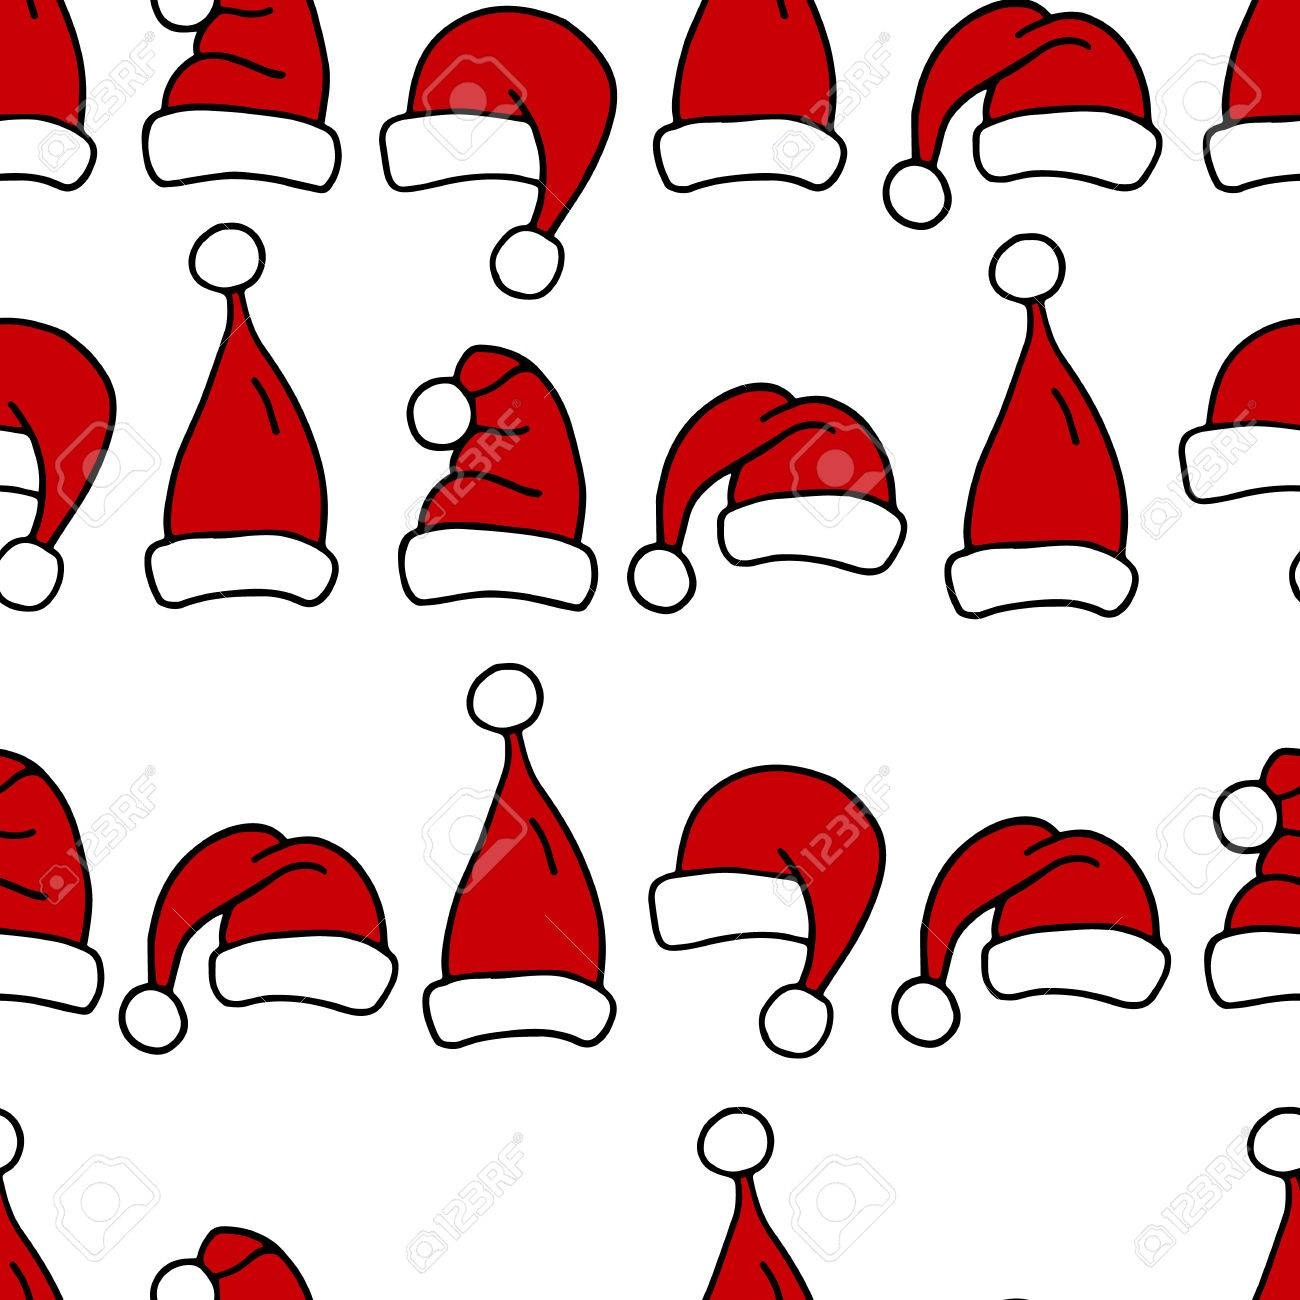 Seamless Pattern With Christmas Hats. Red Santa Hats For Textile - Free Printable Santa Hat Patterns